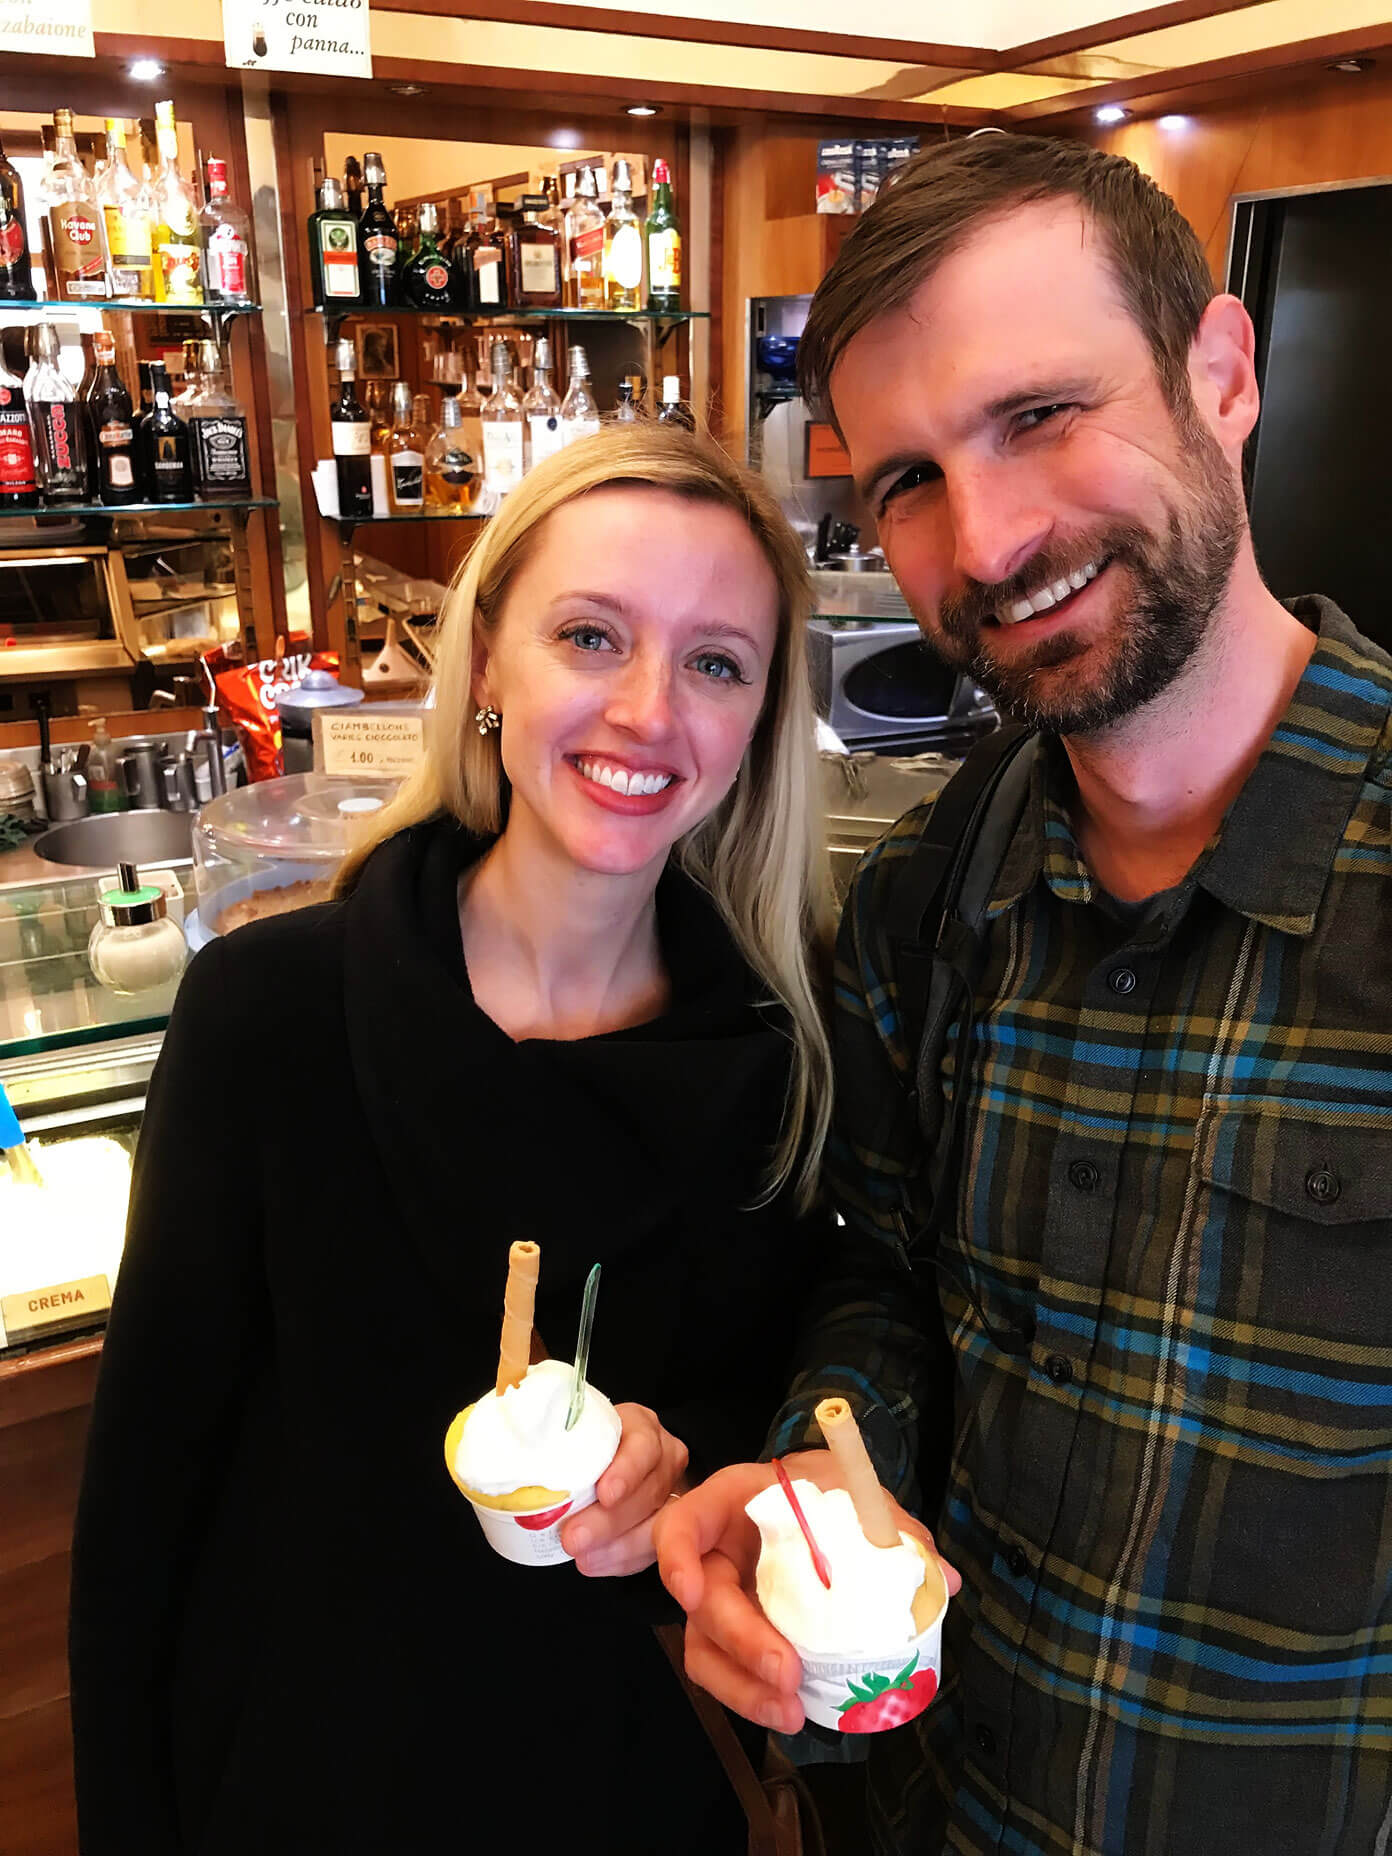 Eating Italy Food Tour Gelato in Rome